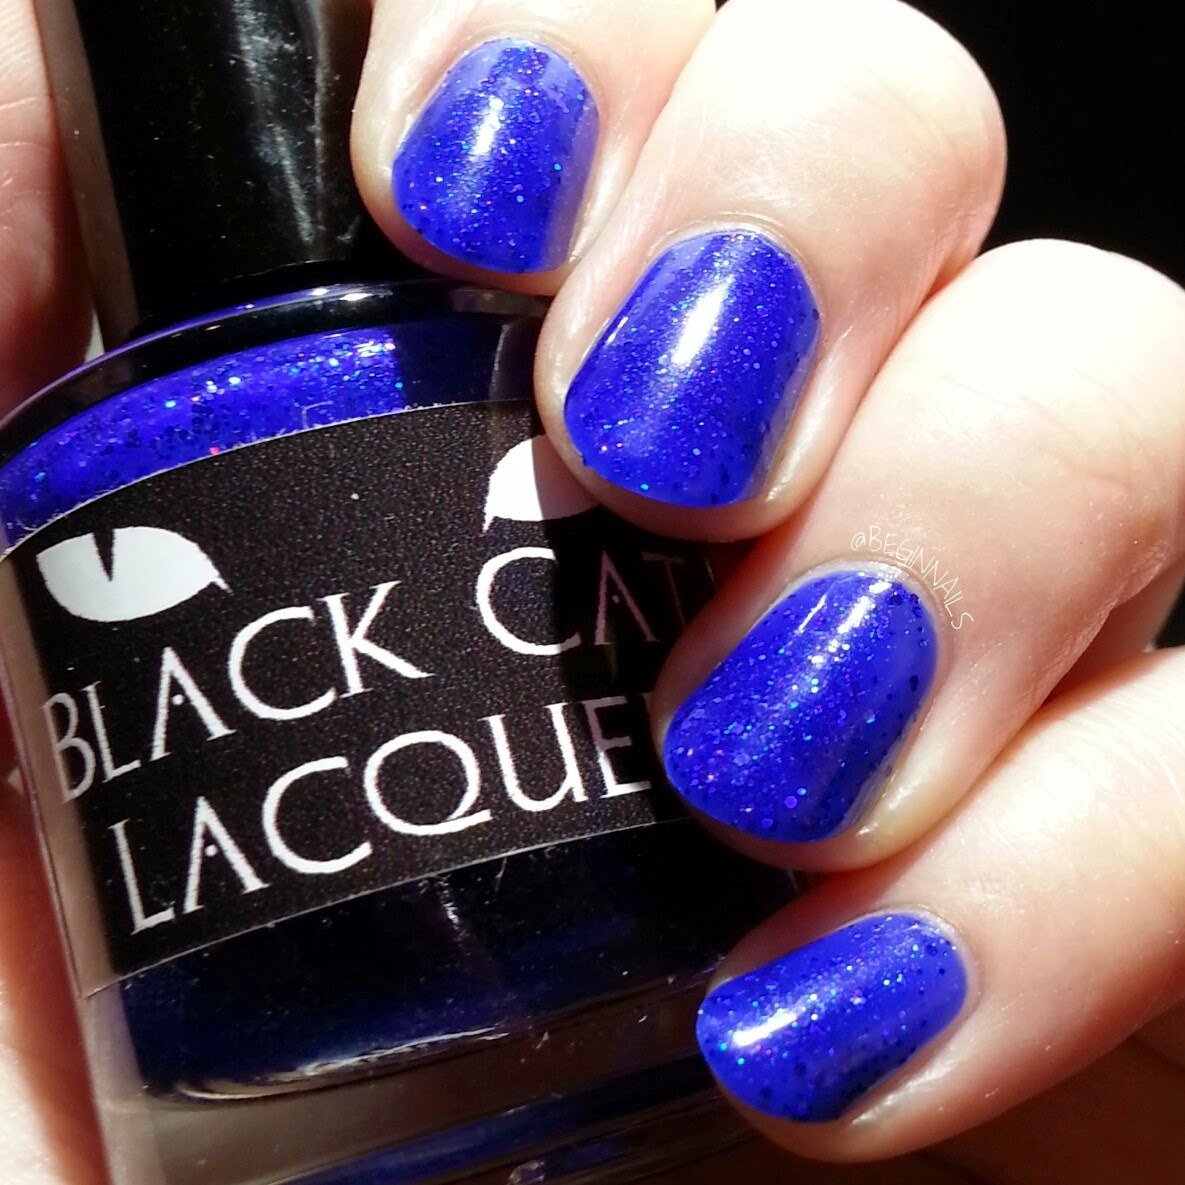 Royal Blue And Contains Iridescent Hex Glitter Photos Show 2 Coats With Shiny Top Coat 1st 2nd Matte 3rd Photo